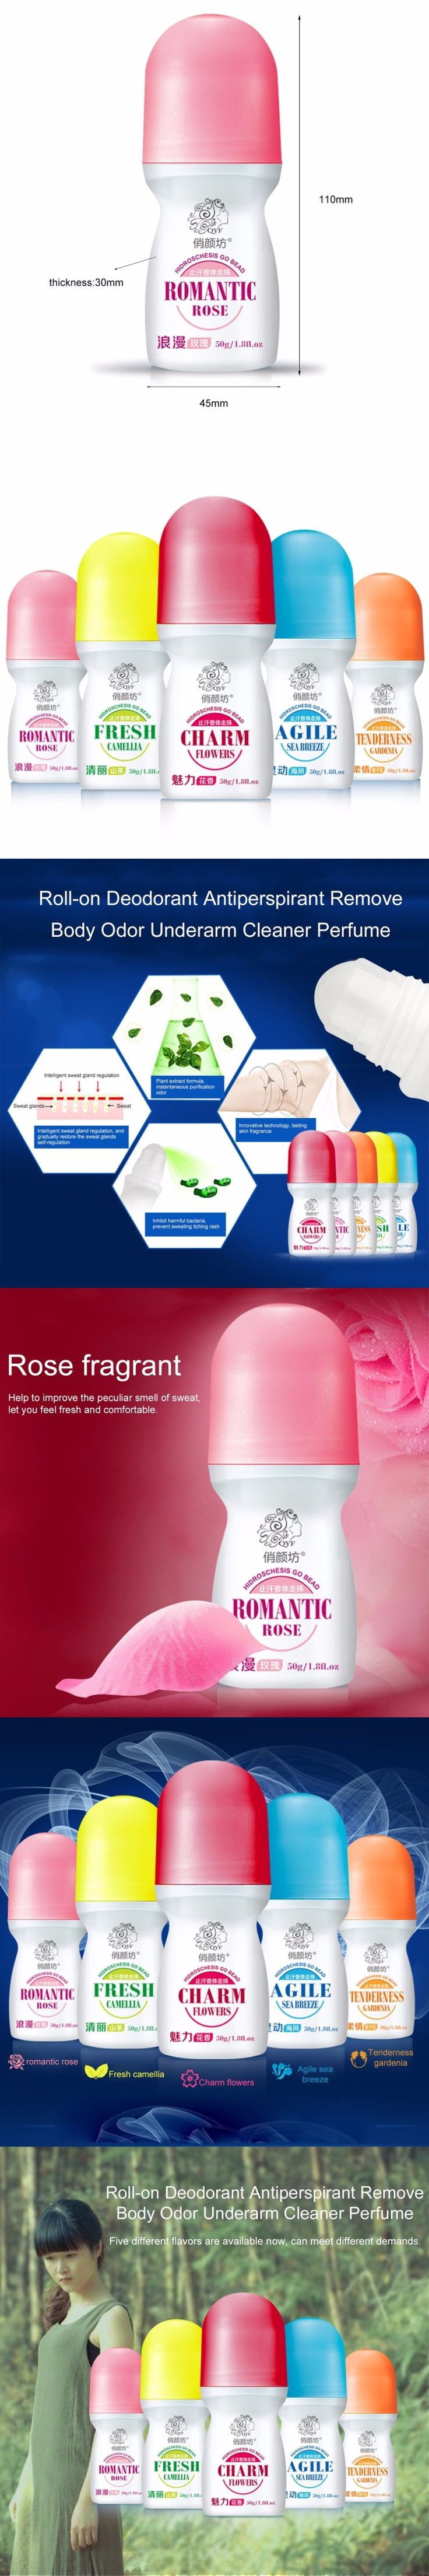 3pcs/lot Roll-on Deodorant Antiperspirant Remove Body Odor Portable Body Lotion Underarm Cleaner Perfume 24 hours Fragrance